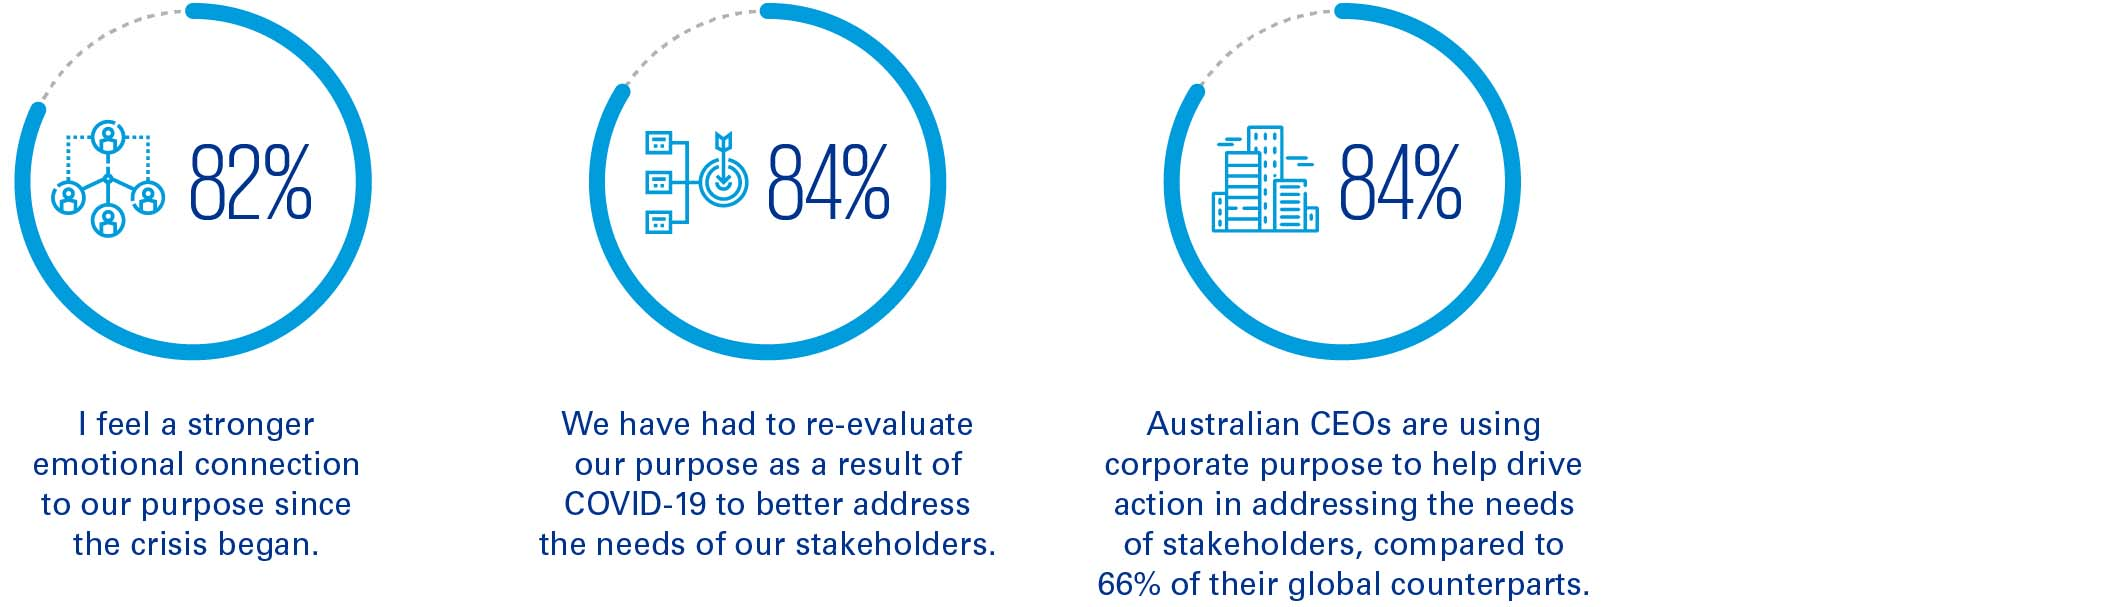 Global CEO Outlook 2020: Purpose infographic